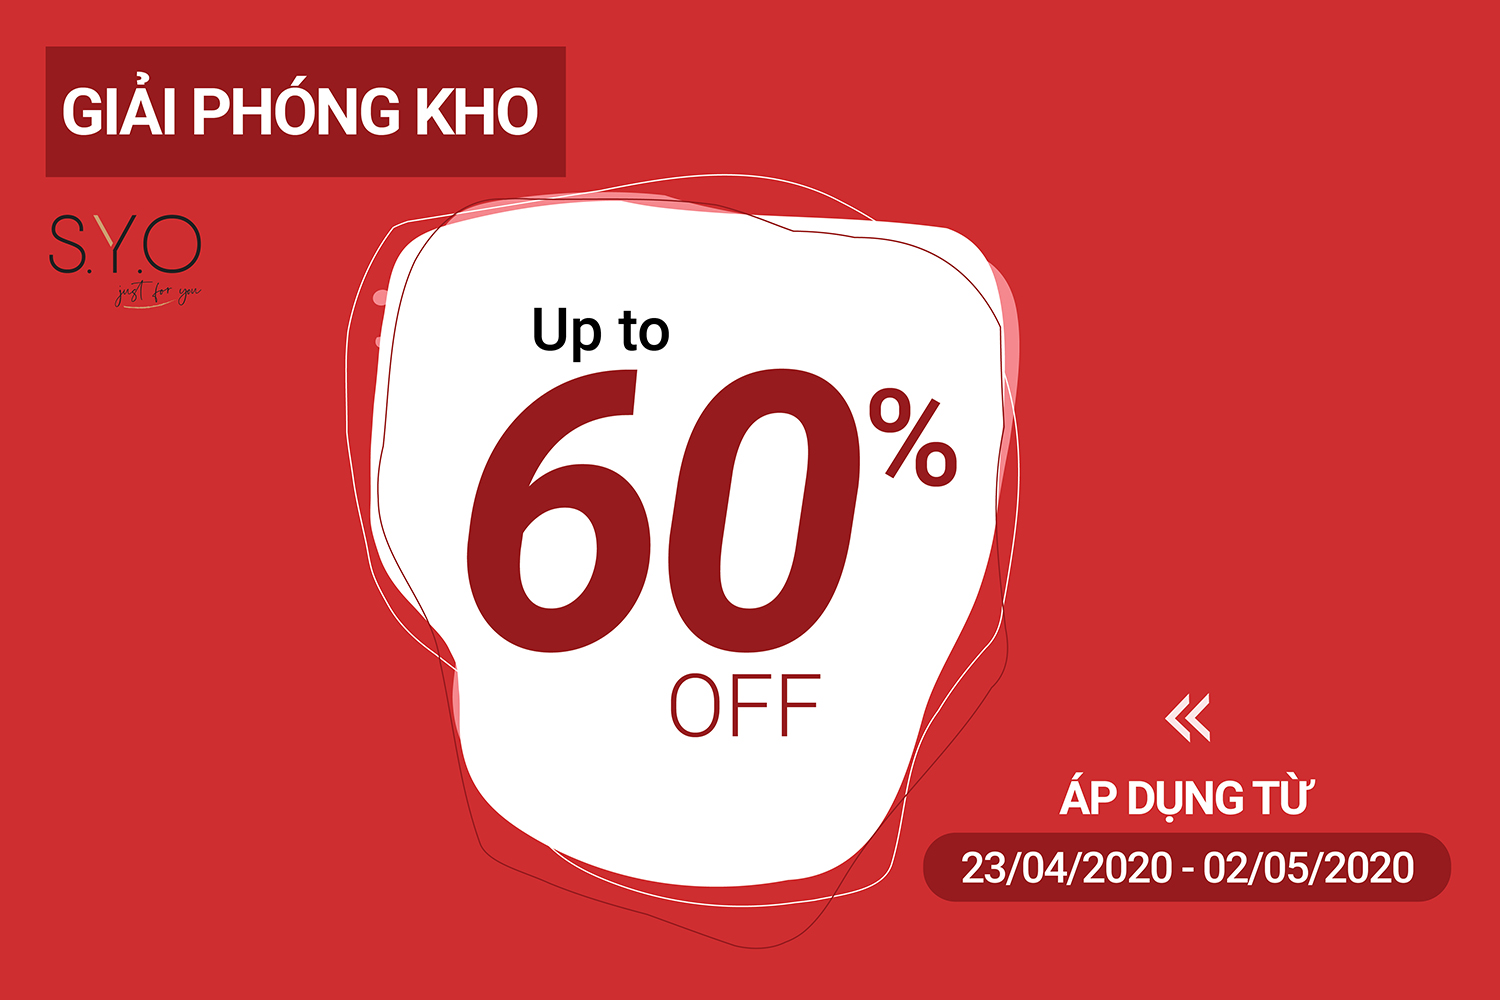 GIẢI PHÓNG KHO SALE UP TO 60%